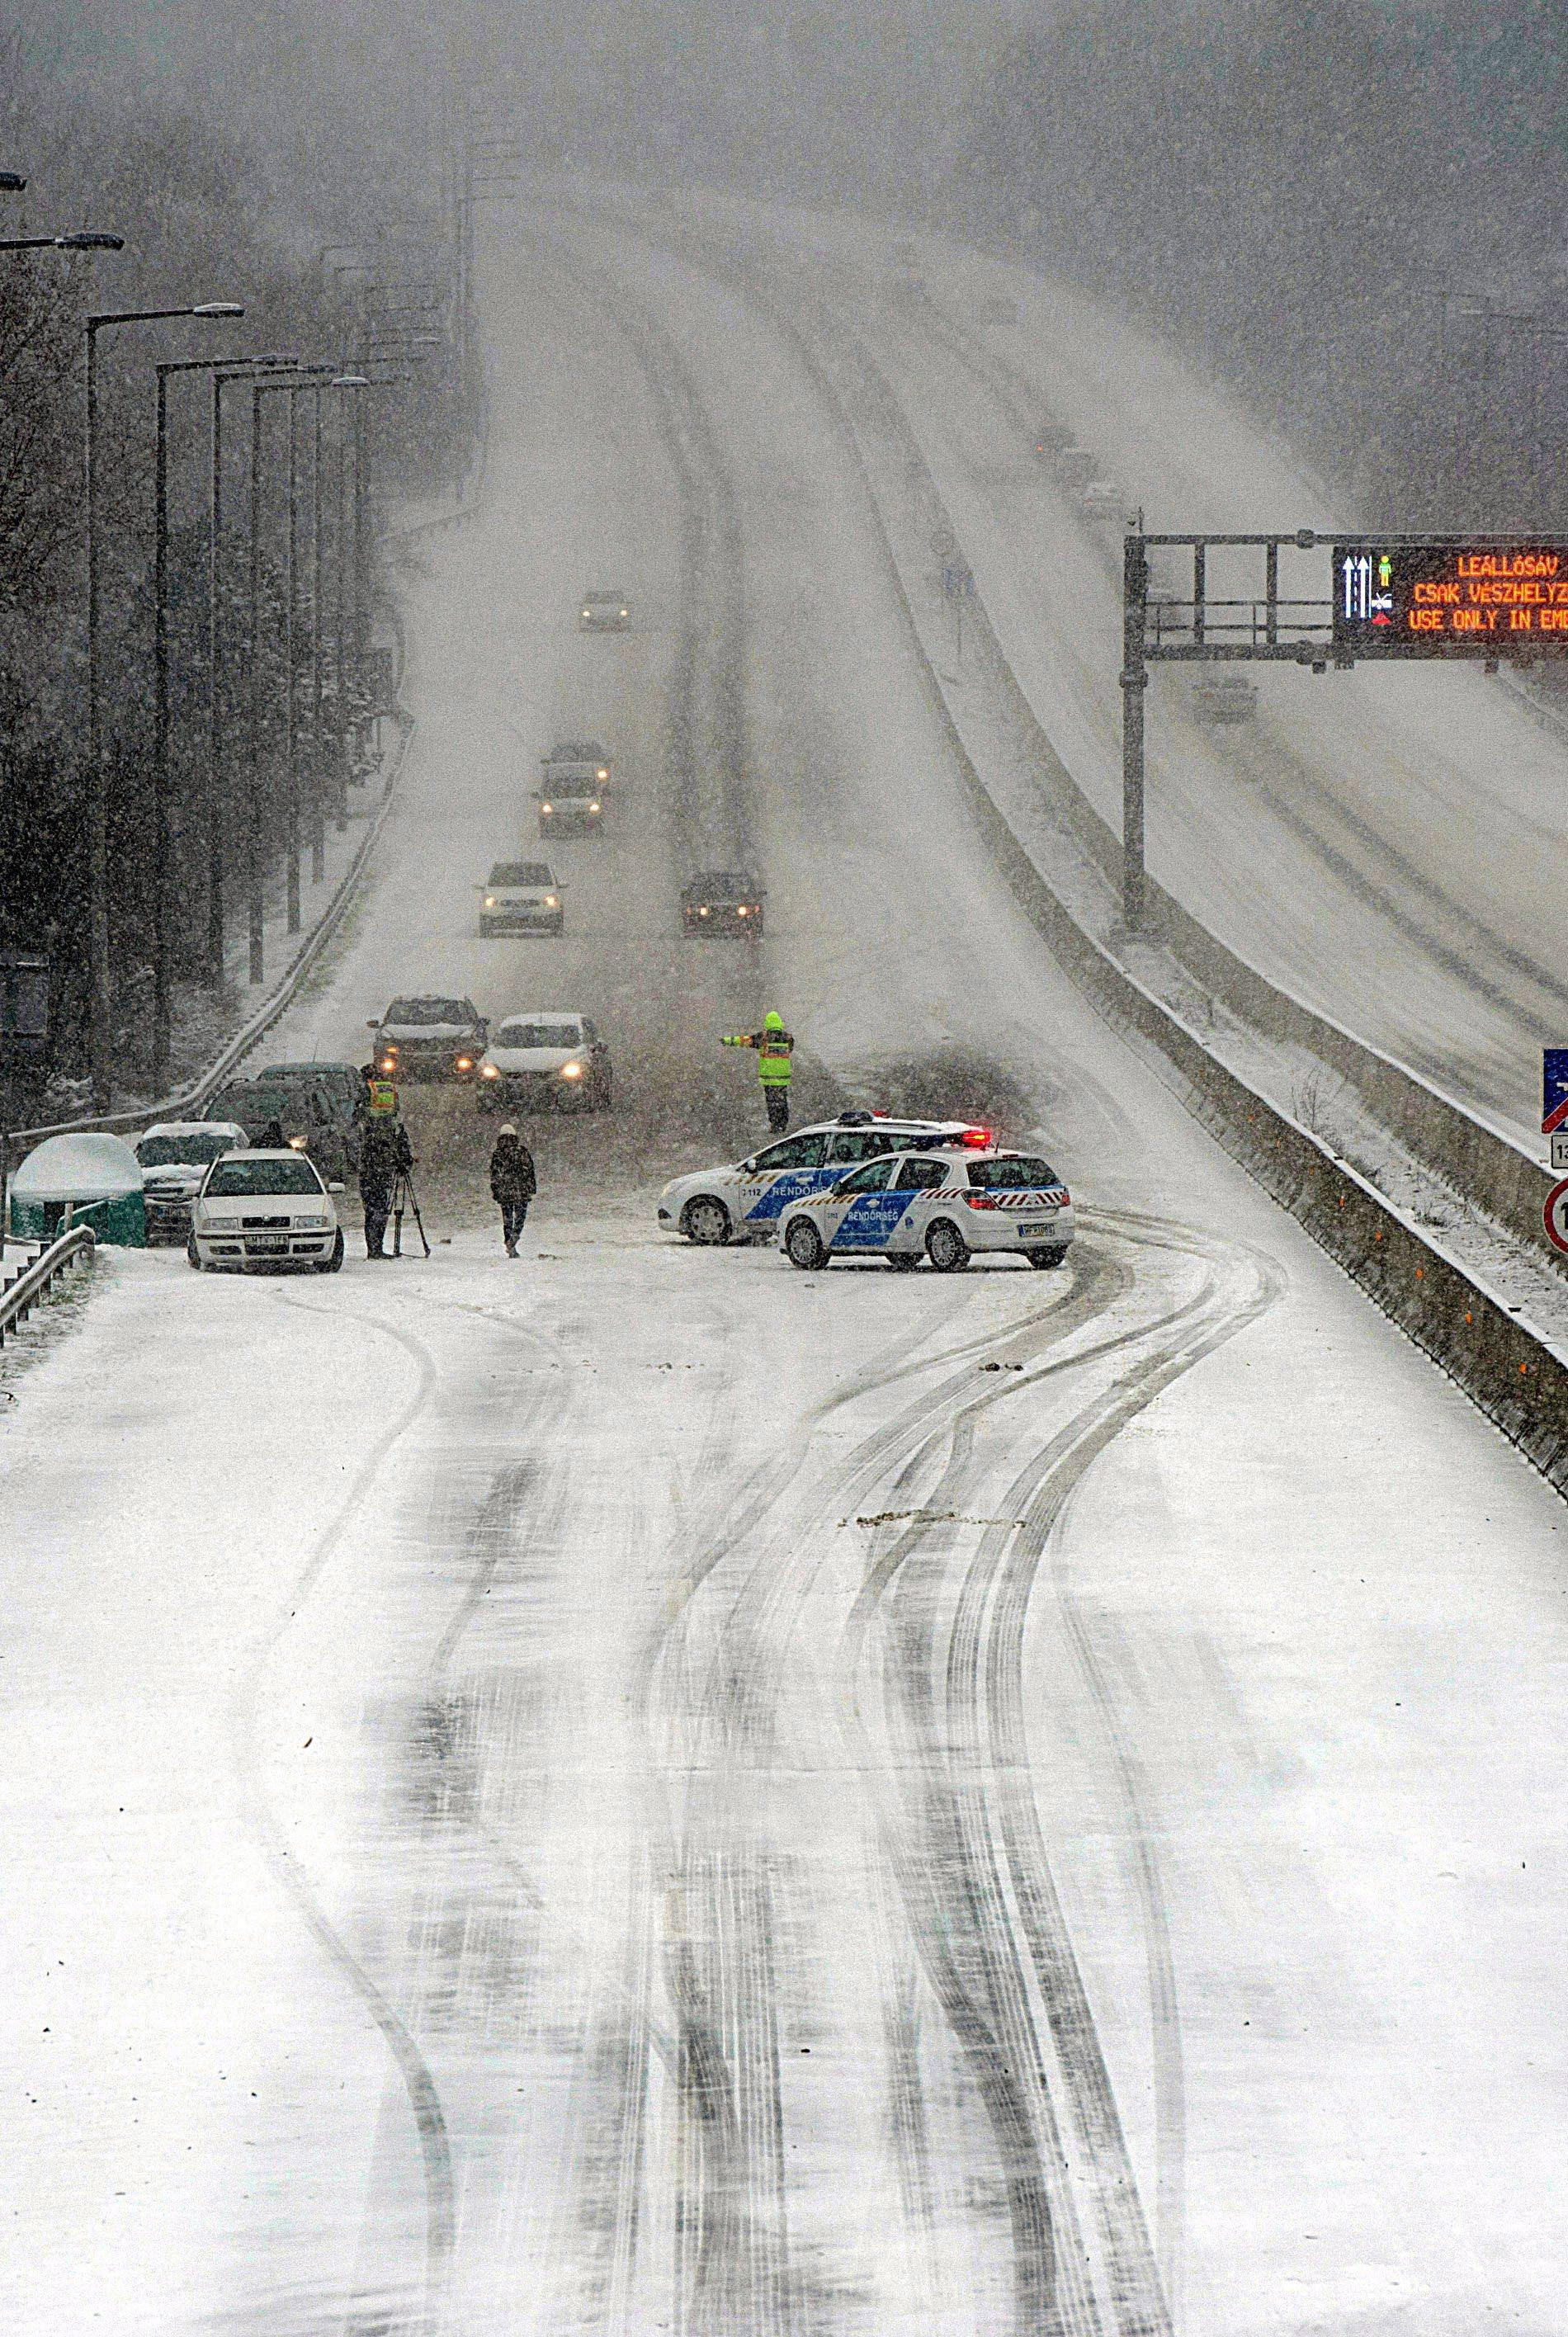 Due to a heavy snowstorms, police seal off a section of a highway in the suburbs of Budapest, Hungary, Friday March 15 2013. Winter weather returning to Hungary with heavy snowfall, blizzards, ice and cold has left thousands without electricity, blocked access to several localities, forced traffic halts in major services and caused several accidents across the country. (AP Photo/MTI, Peter Lakatos)